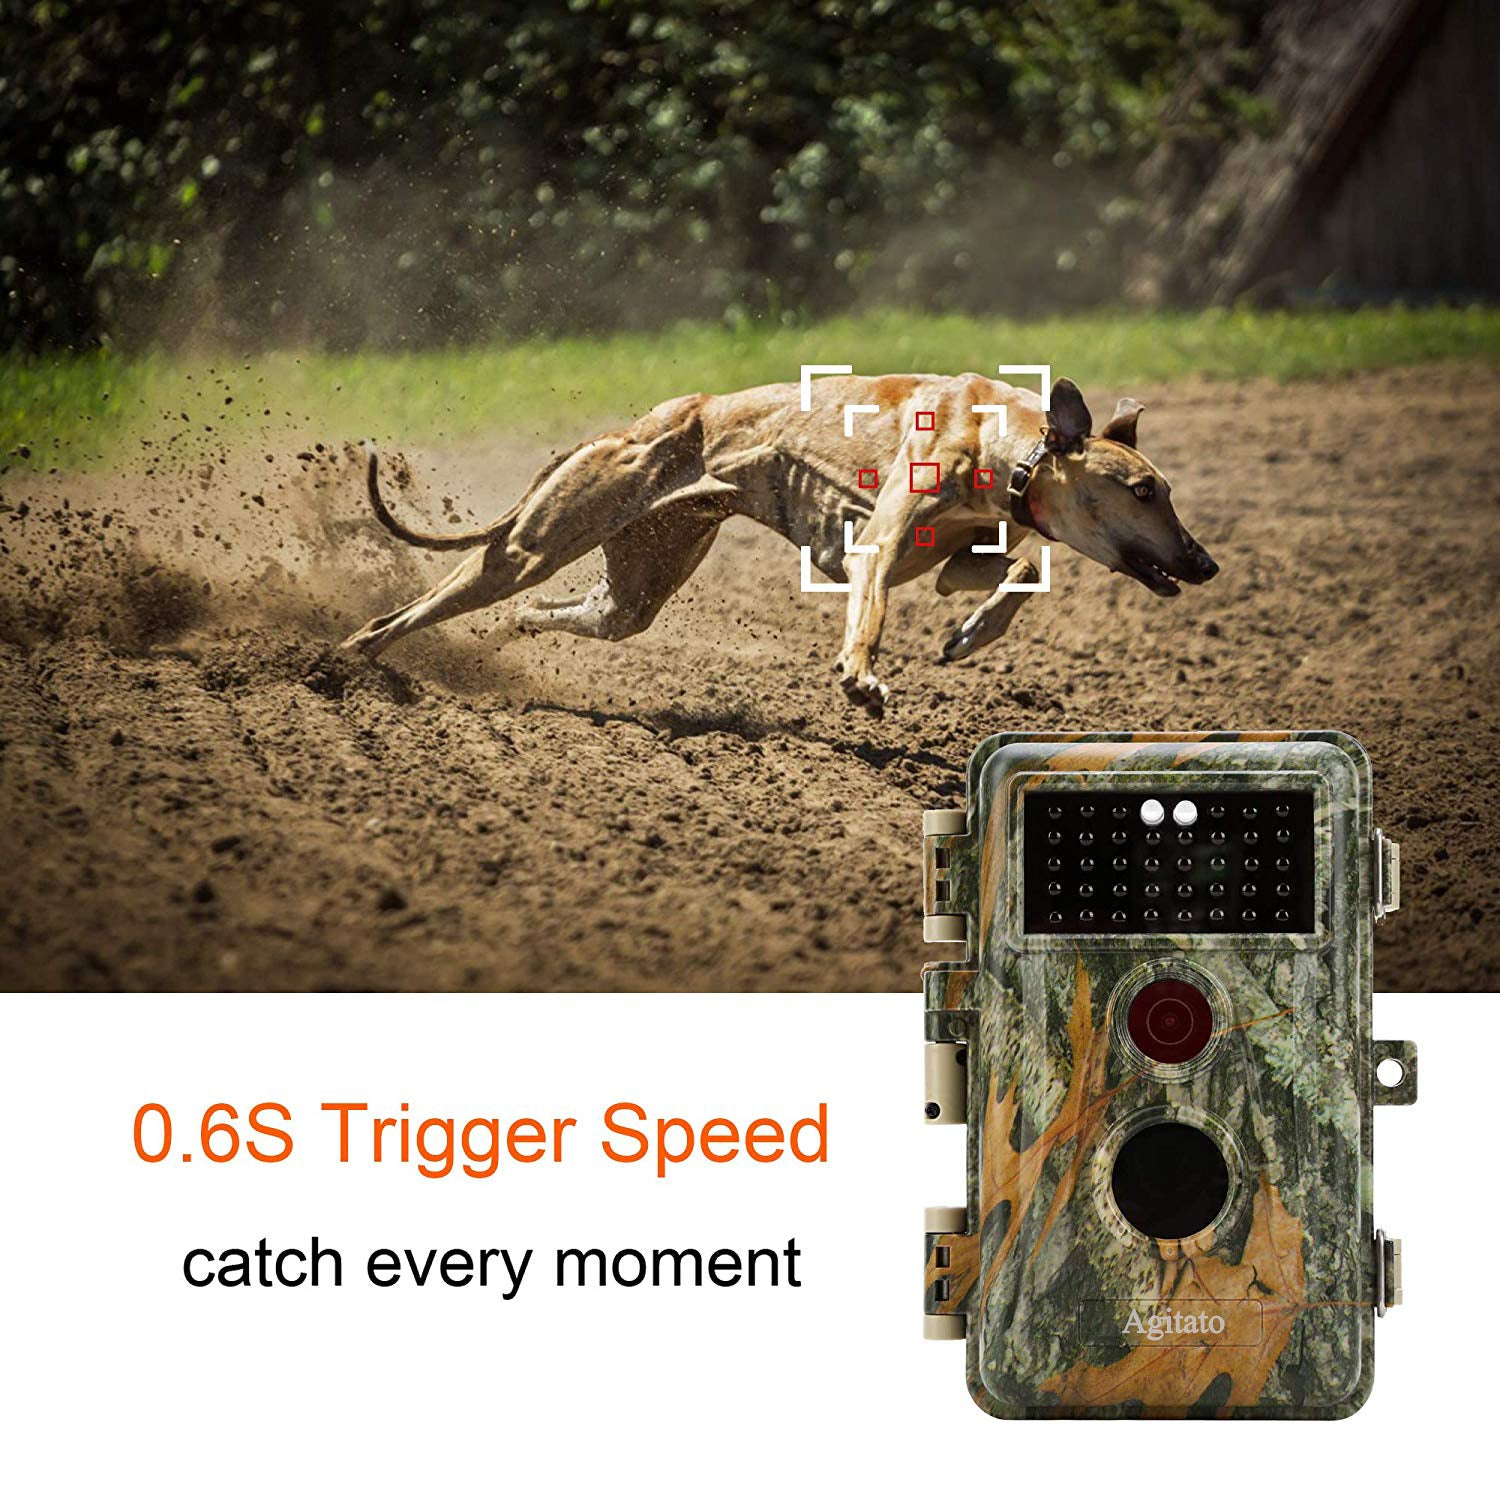 4-Pack No Glow Game & Trail Deer Hunting Cameras 16MP 1920*1080P Night Vision Motion Activated Time Lapse & Time Stamp Video Recording Multi-shot Mode